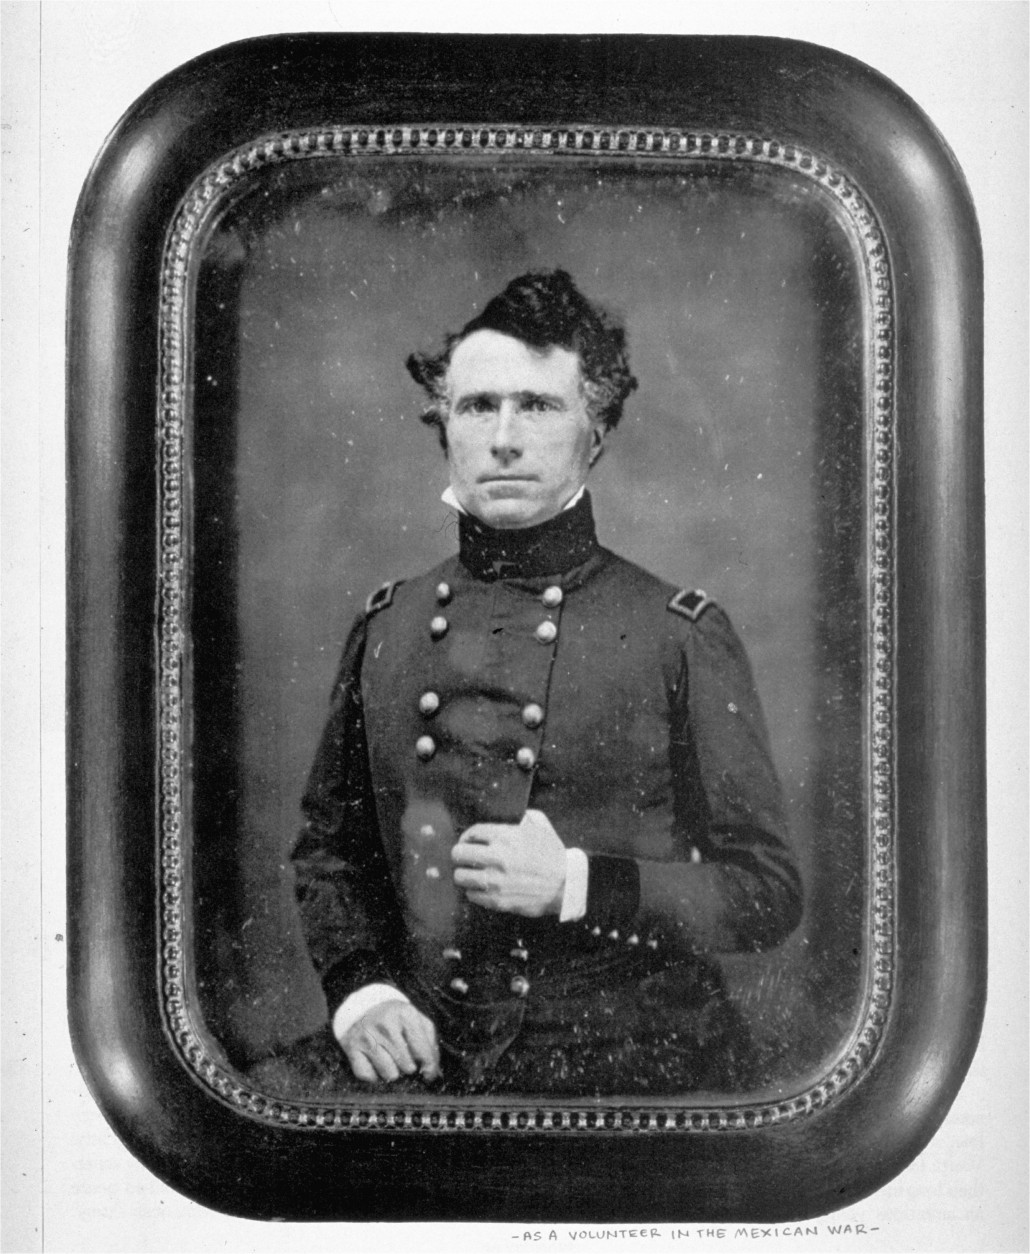 A portrait-daguerreotype of Franklin Pierce, circa 1846-1848, as a volunteer in the Mexican War.  Pierce was elected 14th president of the United States (1853-1857).  (AP Photo/Library of Congress)